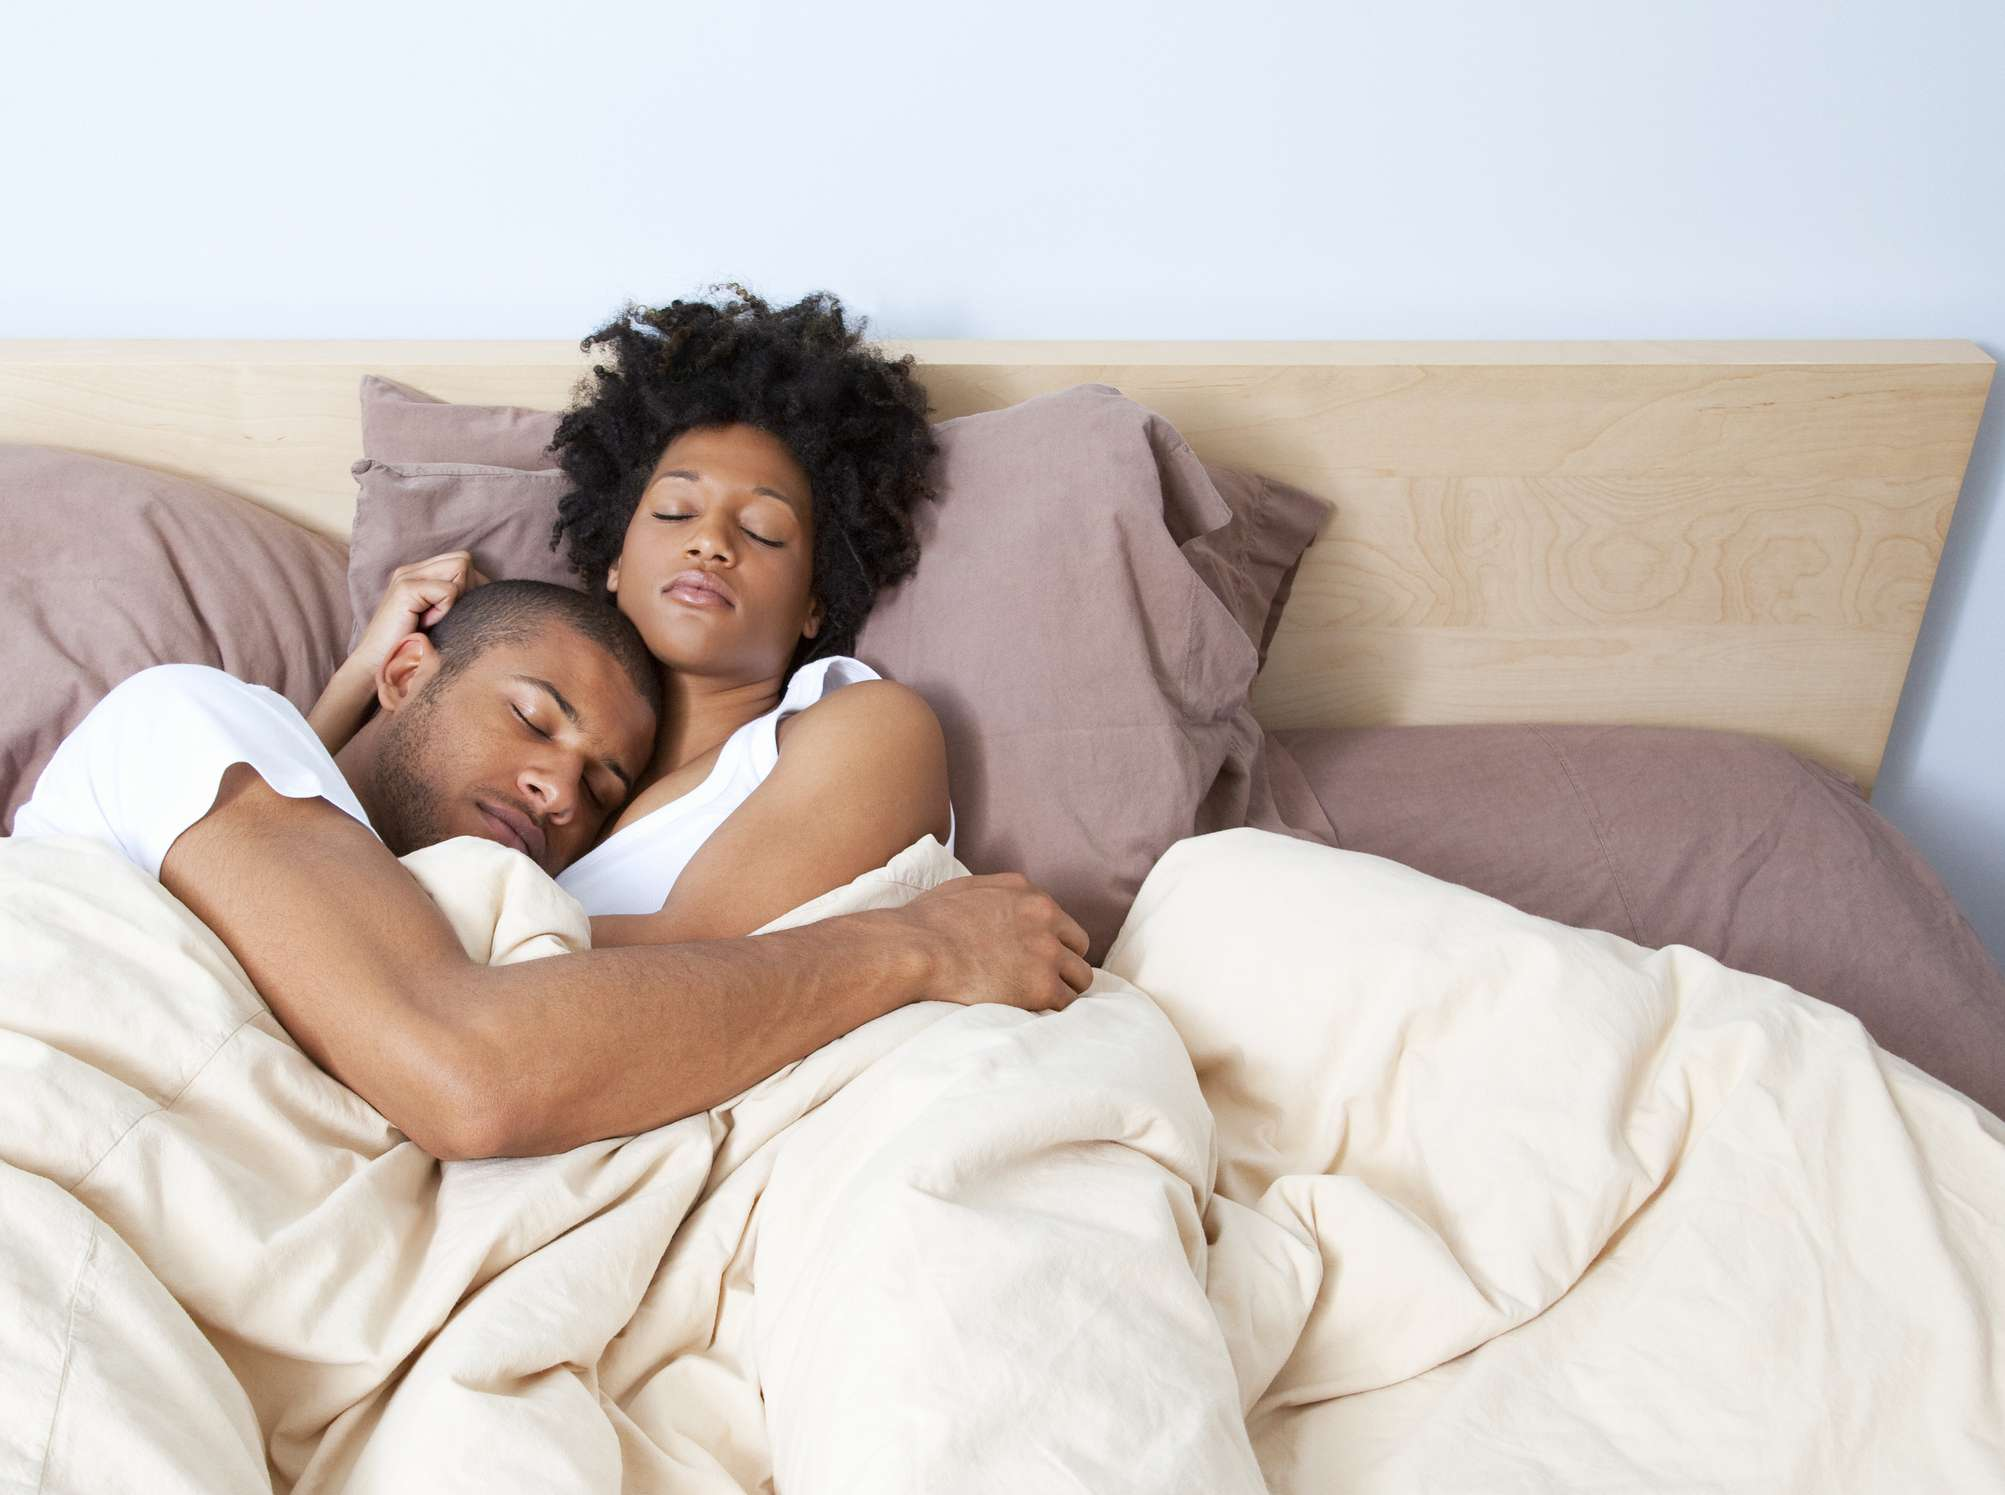 Couple in bed taking a nap